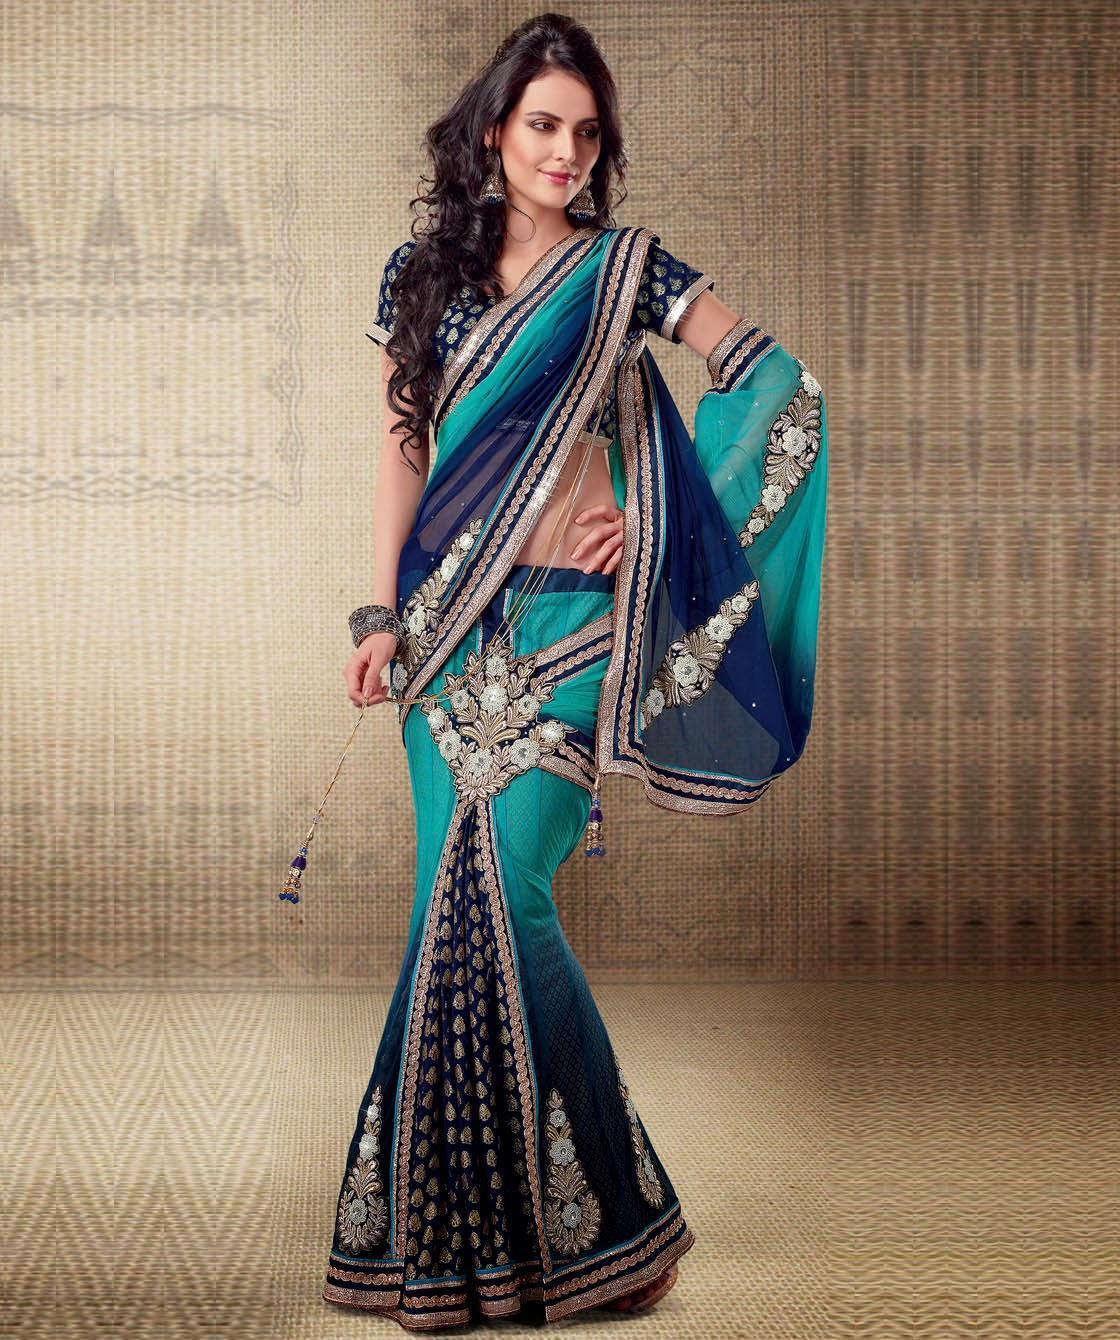 hindu singles in price county Meet singles in price do you want to find a single person for happily ever after meet singles in price interested in meeting new people to date.